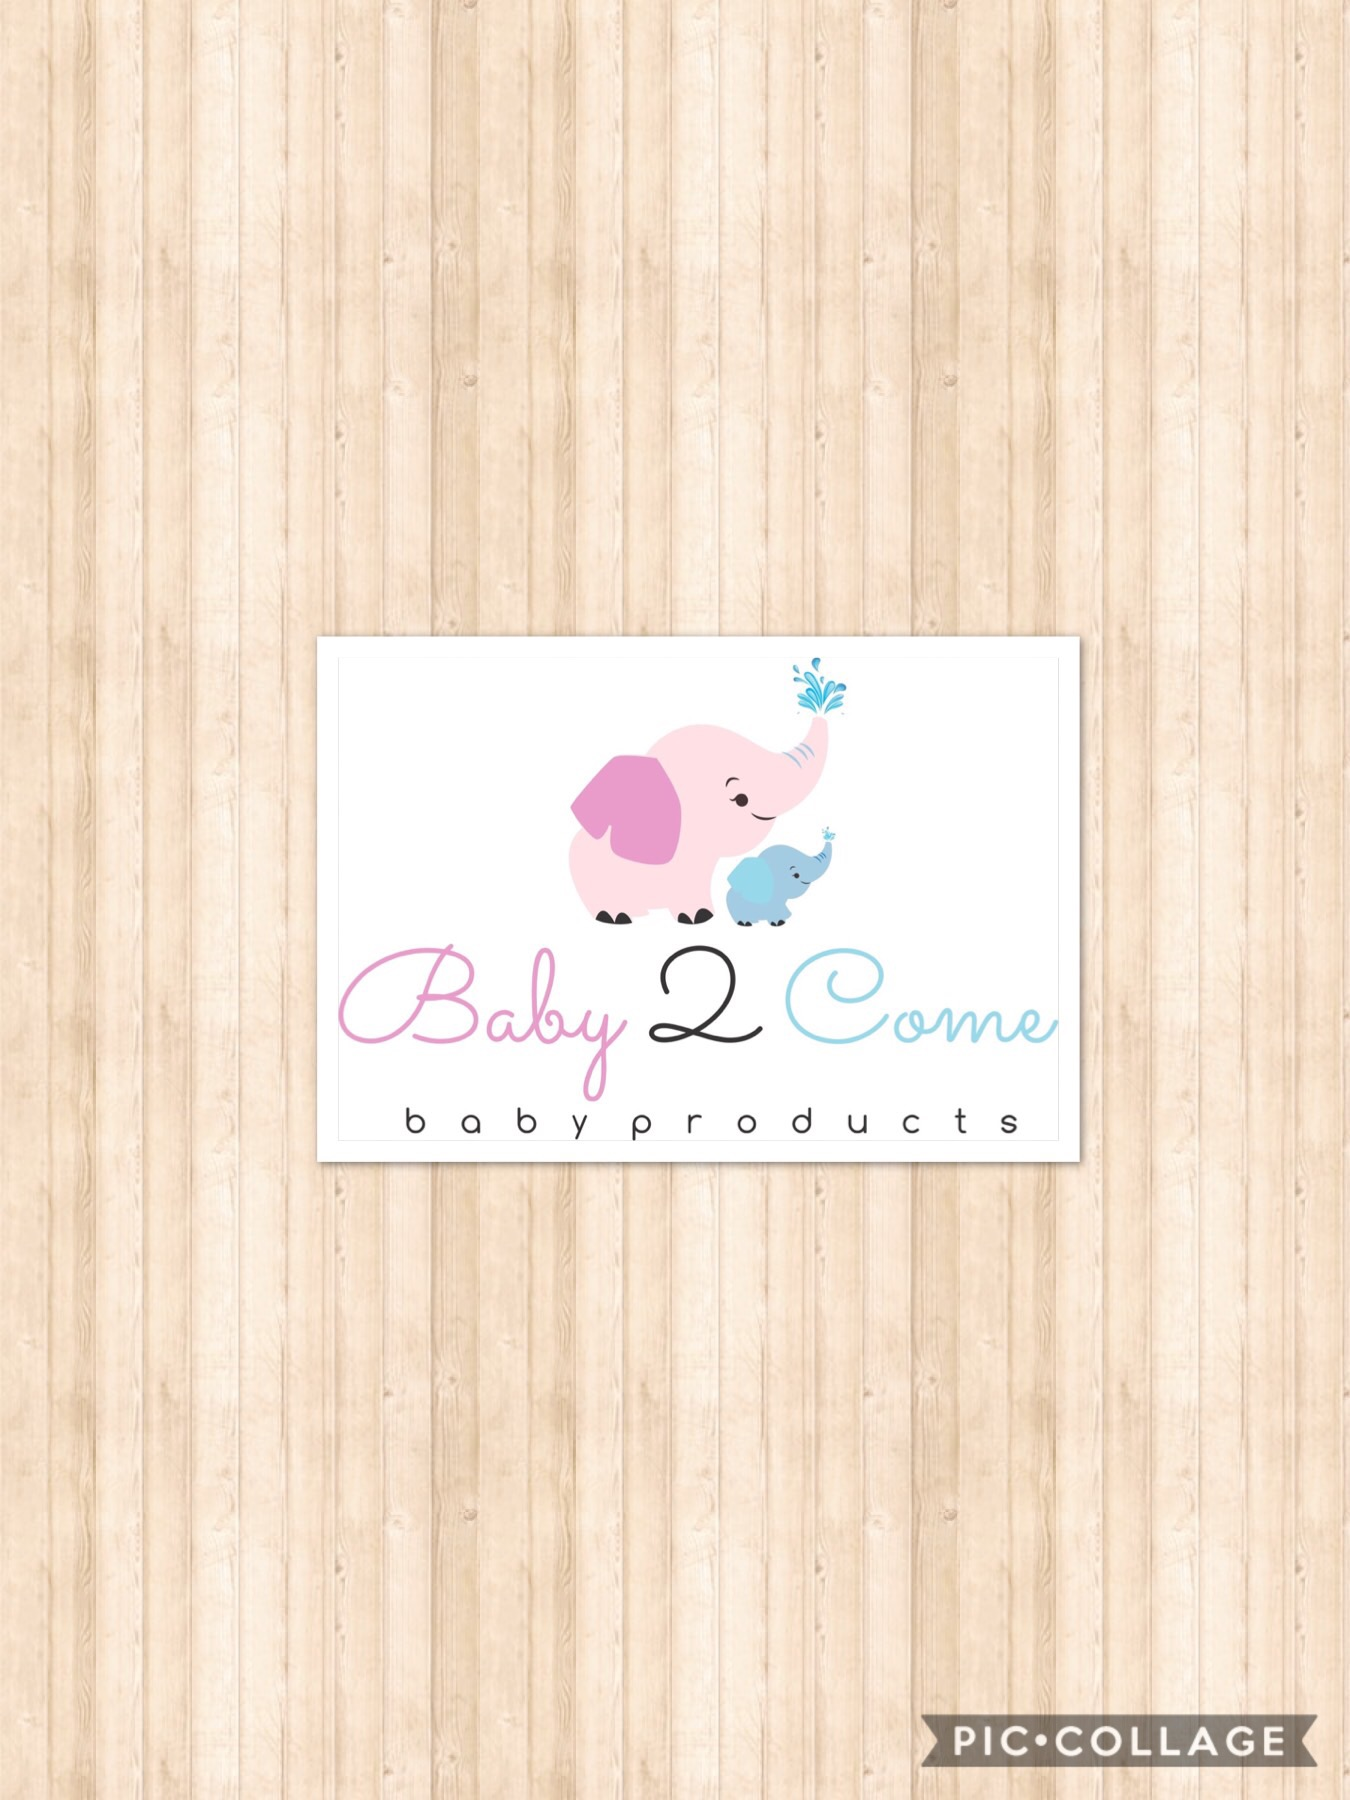 USA Supplier Baby Products - Shopify Community